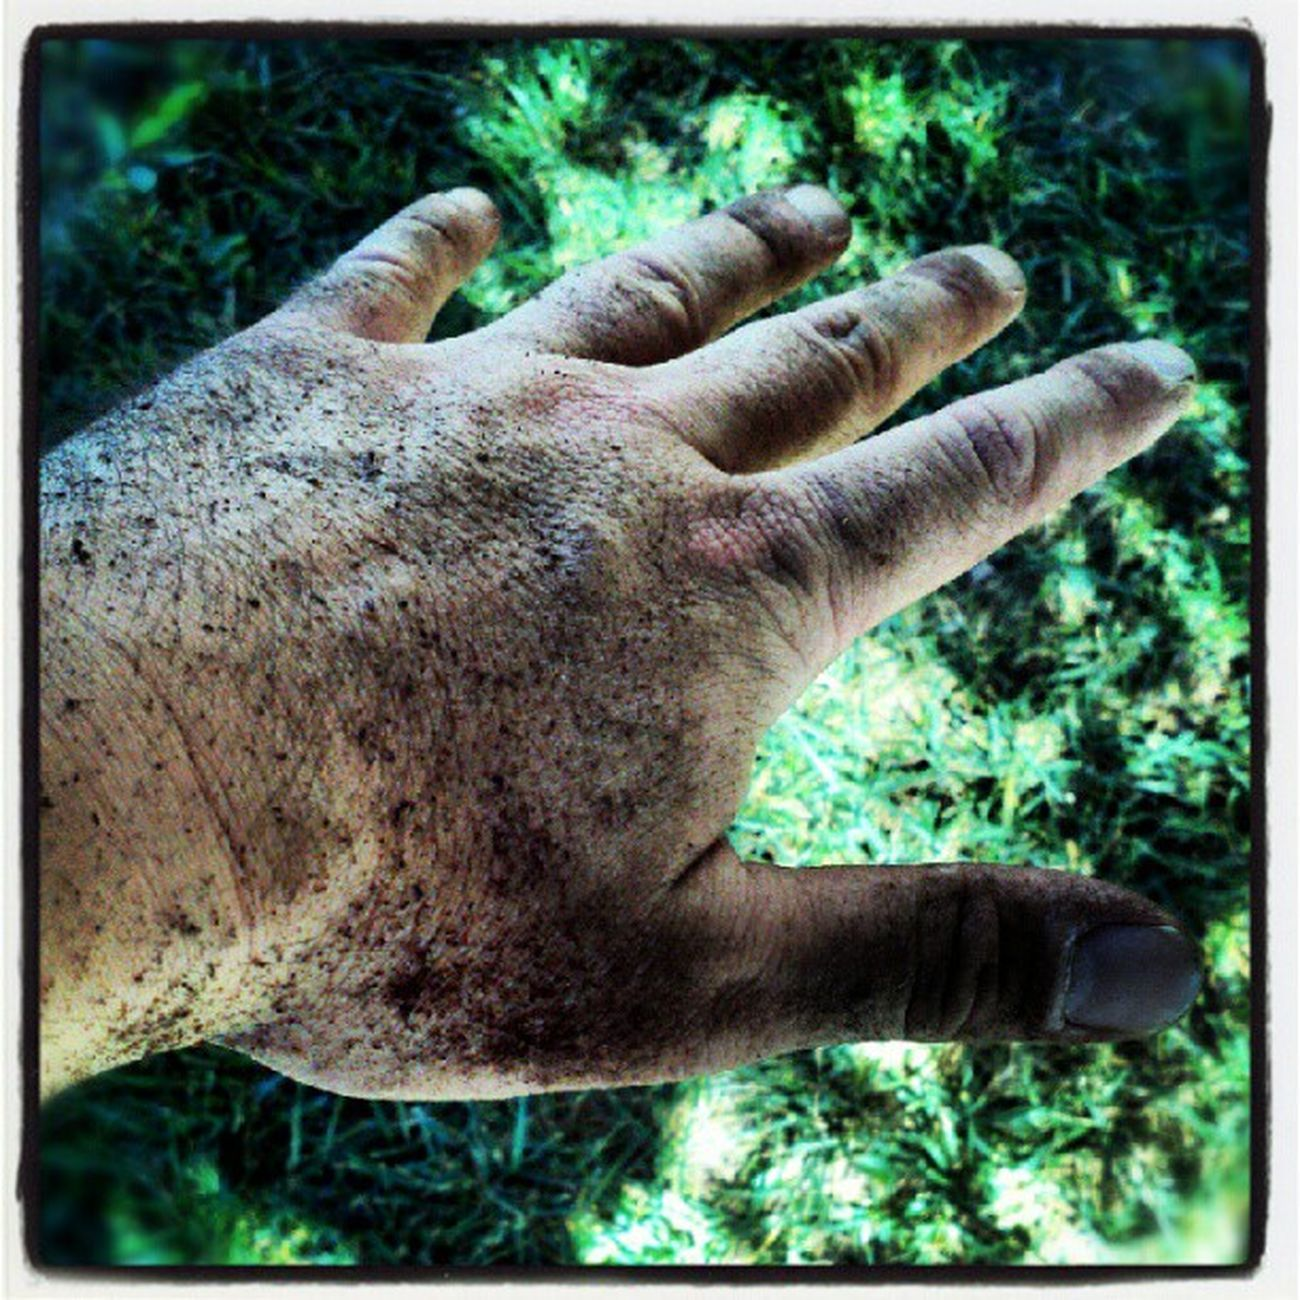 No green thumb here! Dirtyhands Gardening lol